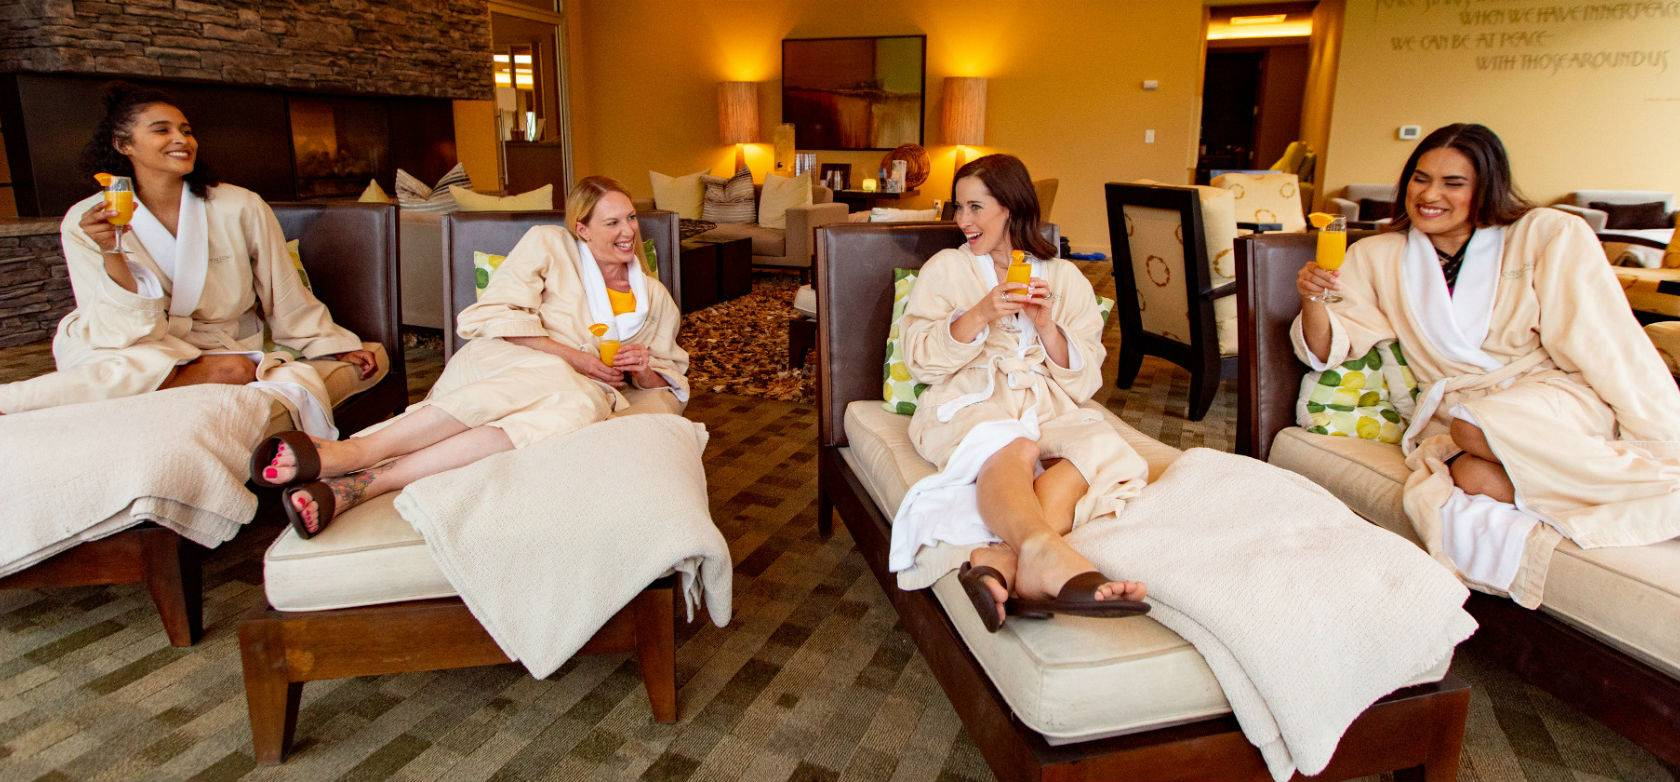 019 Girlfriends lounging at Heidel House Spa in Green Lake (1)